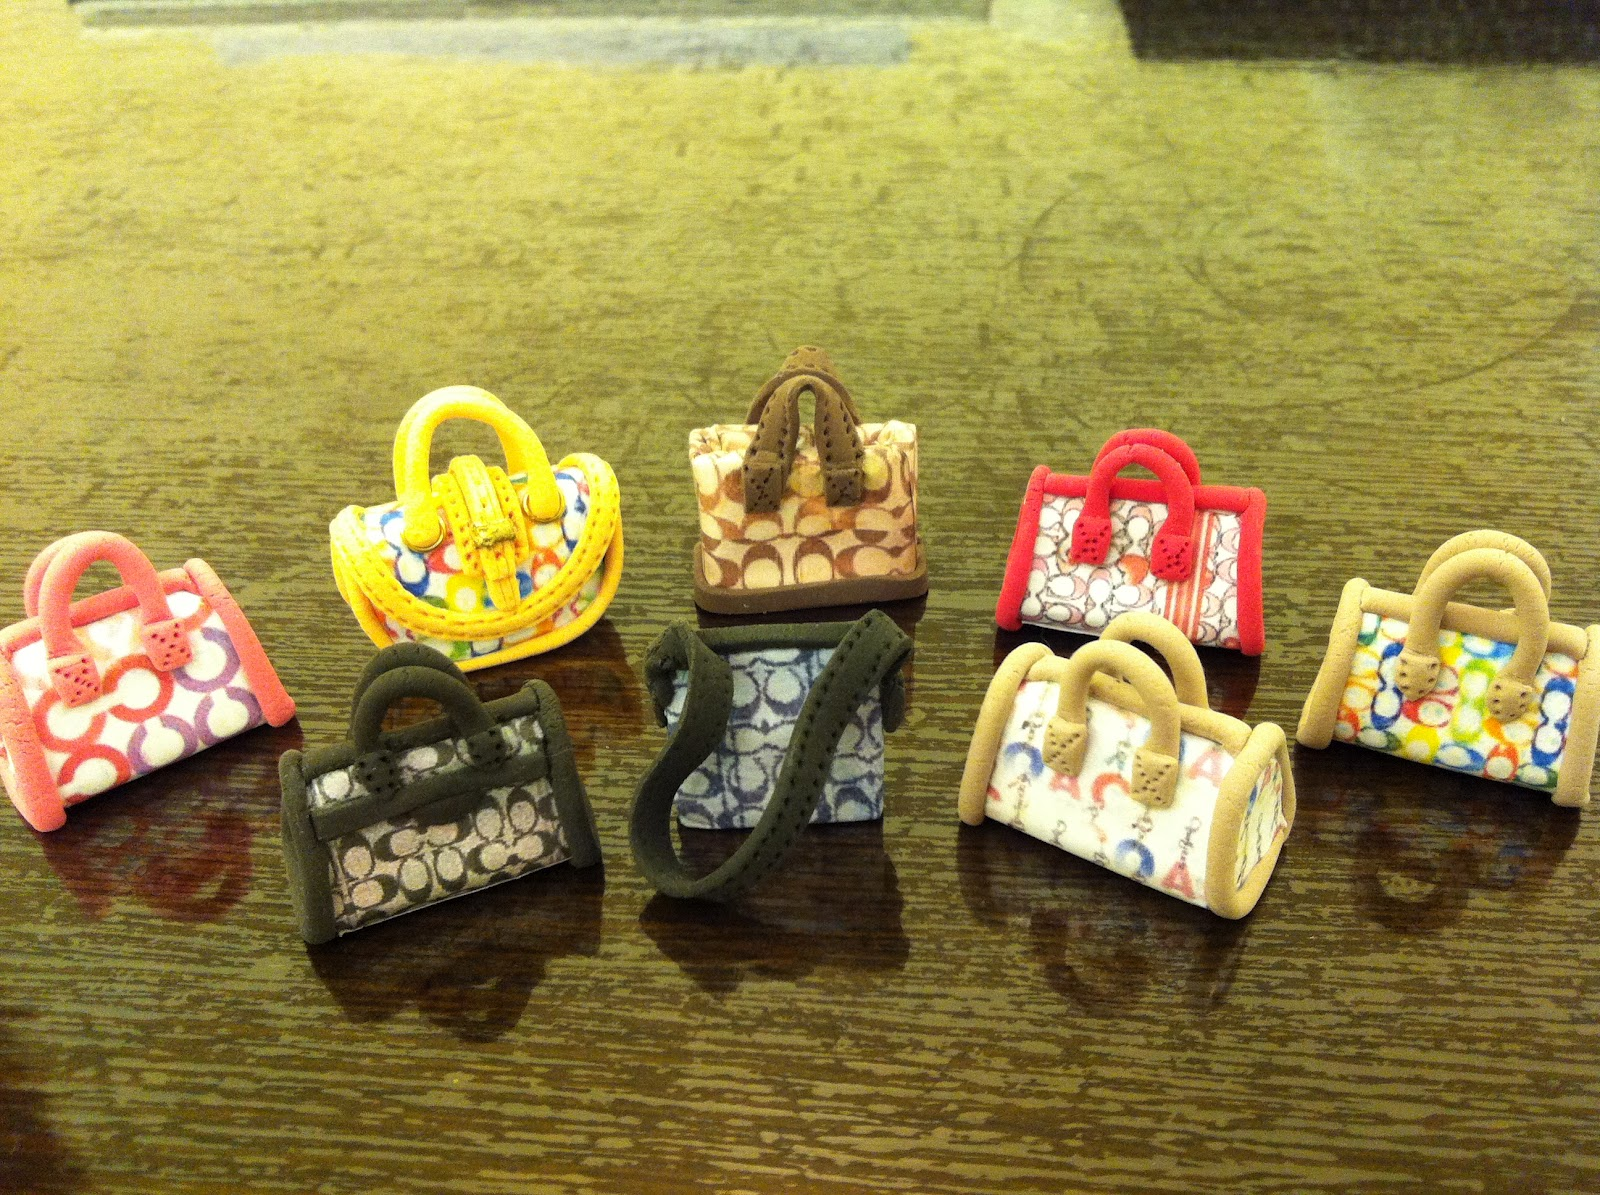 My paper clay projects designer handbags part 4 for Paper clay projects